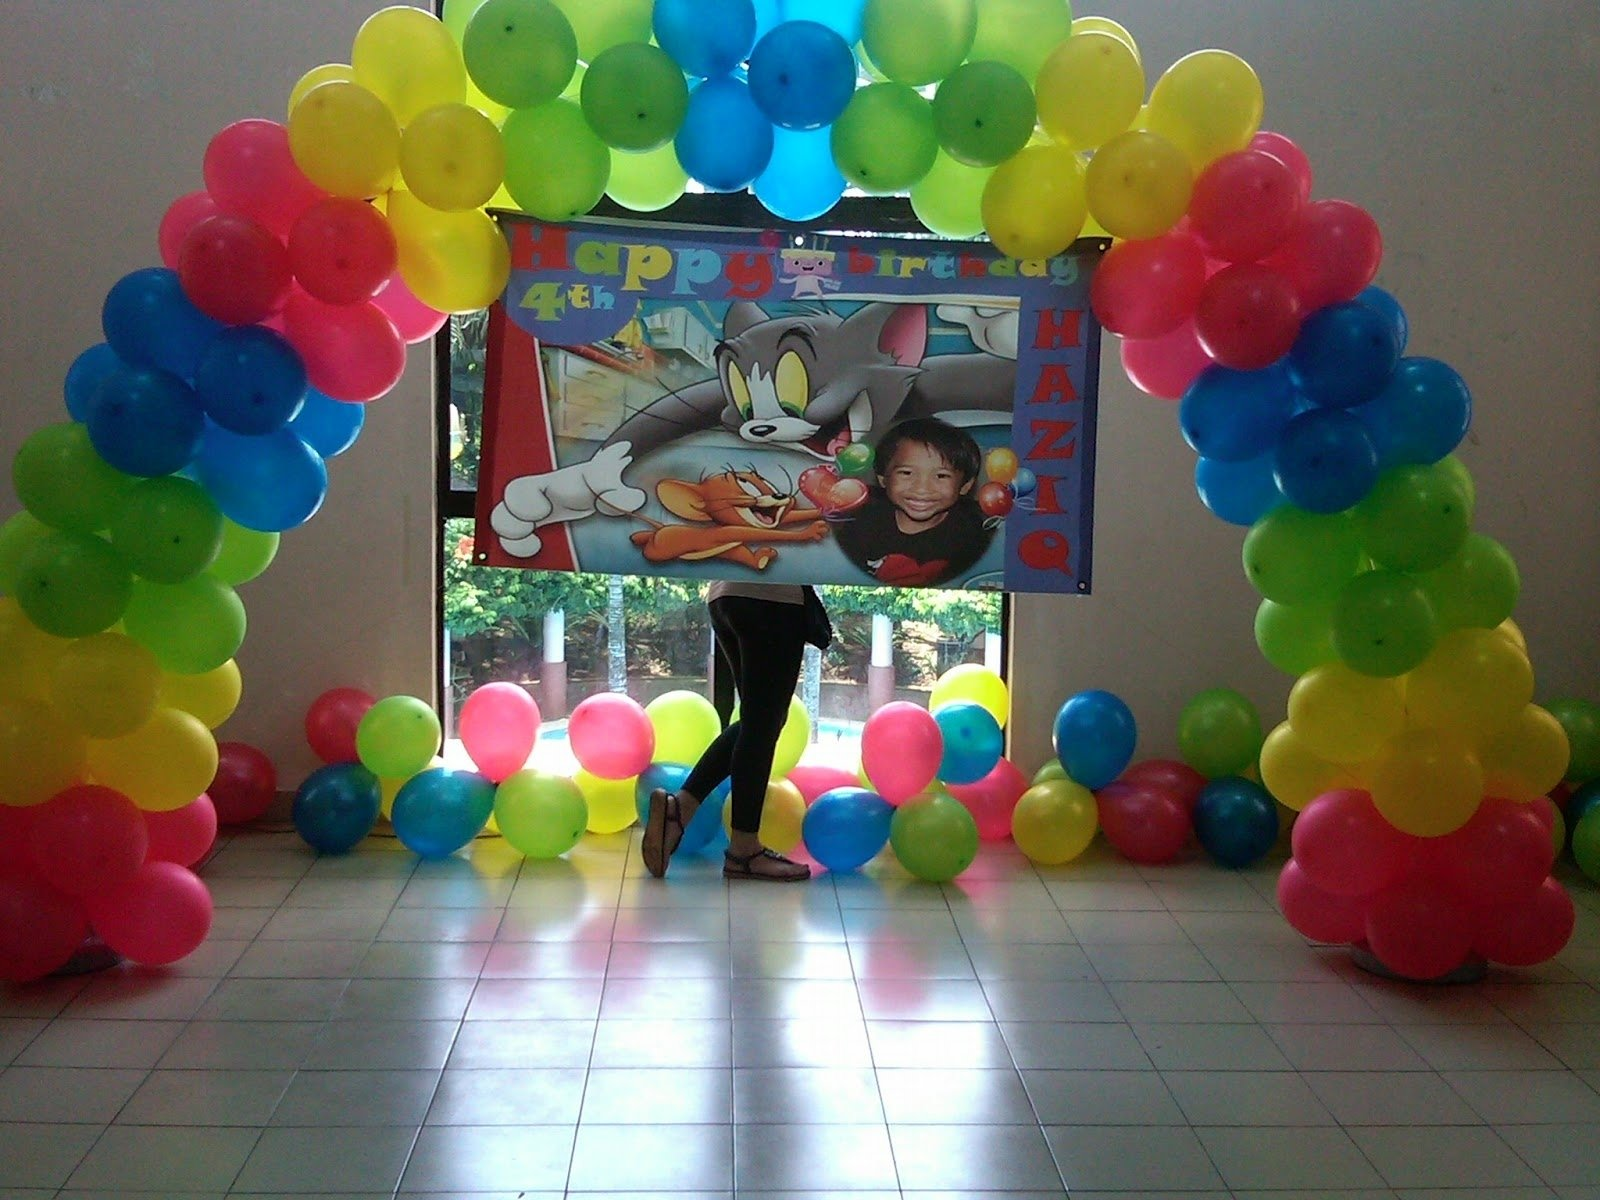 10 Lovely Tom And Jerry Birthday Party Ideas tom and jerry birthday party theme ideas home design ideas 2021